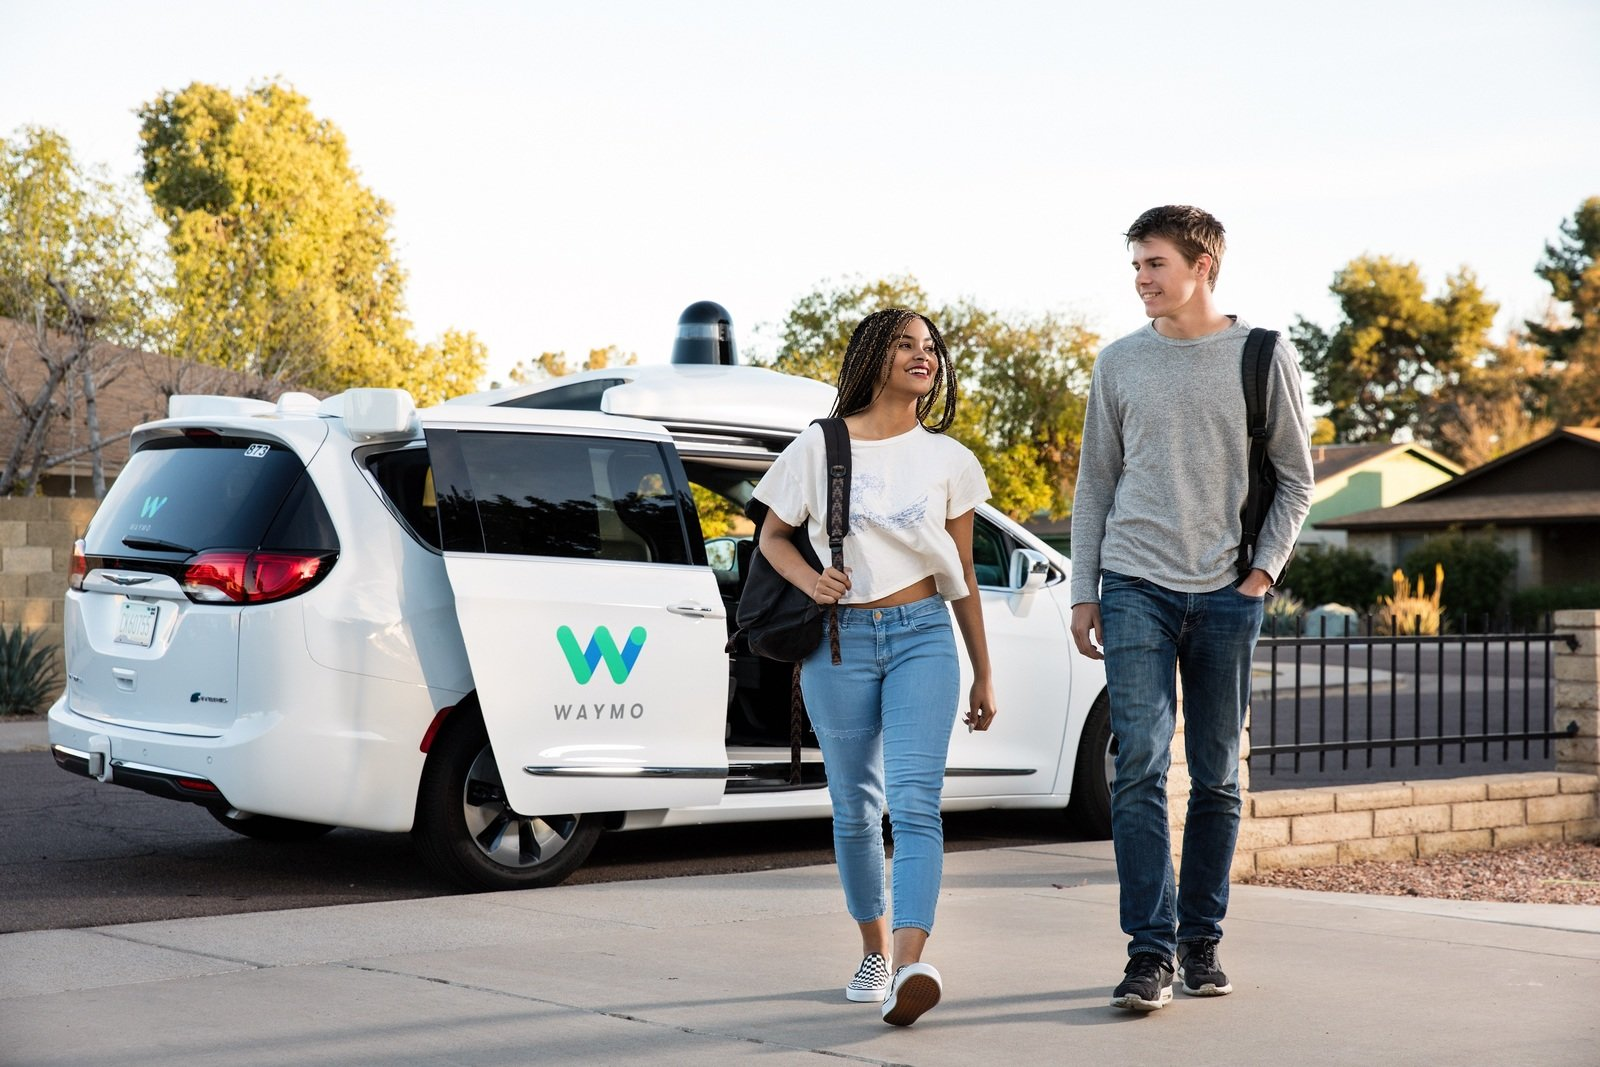 Uber Or Lyft >> Waymo All Set To Launch Self-Driving Taxi Service Next ...